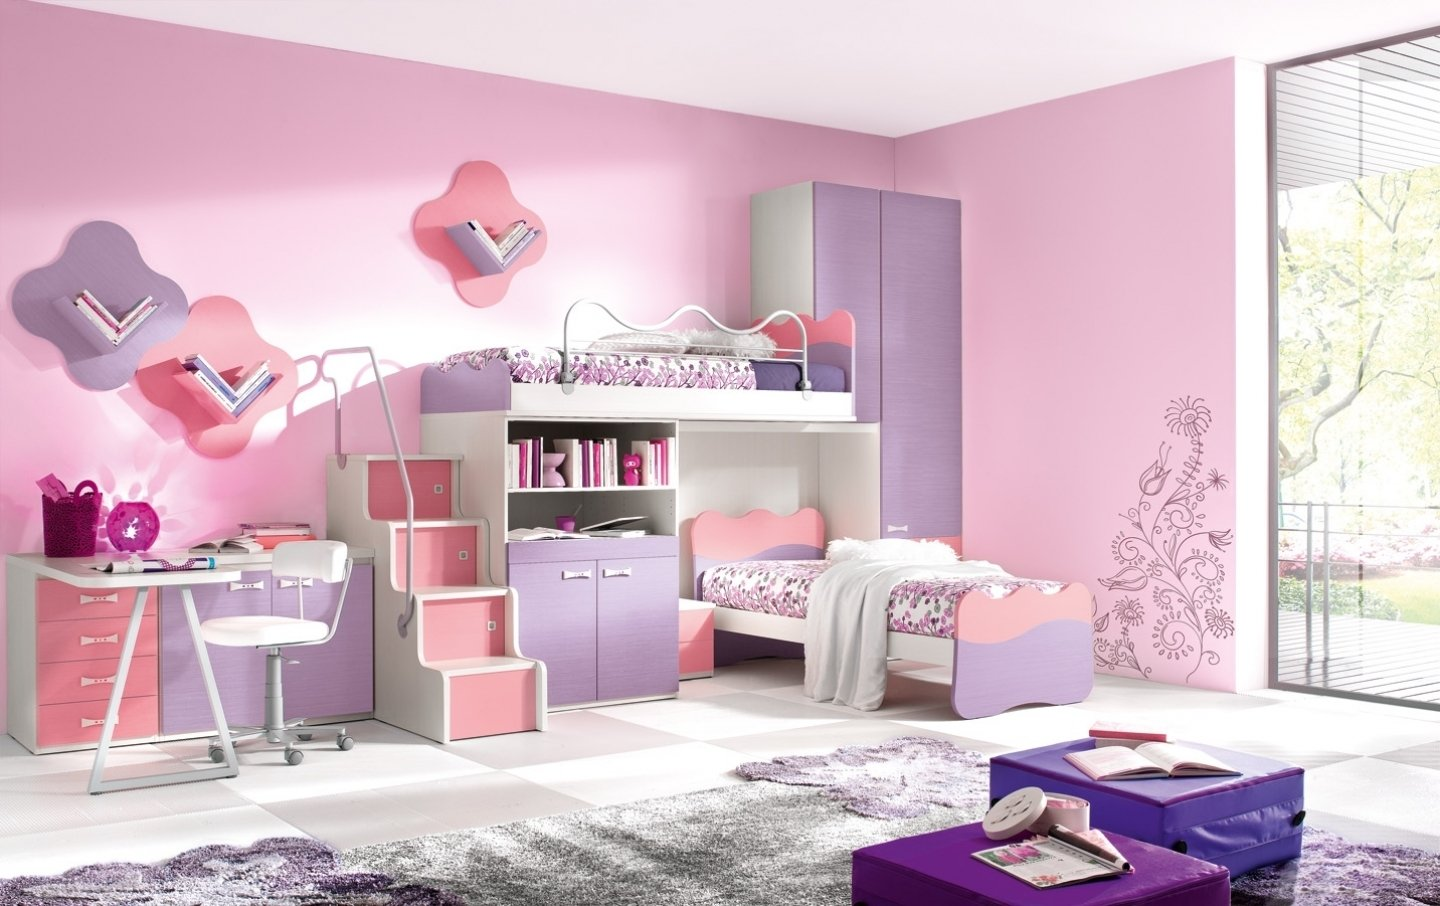 10 Nice Bedroom Decorating Ideas For Teenage Girls popular of bedroom decorating ideas for teenage girls pertaining to 2021